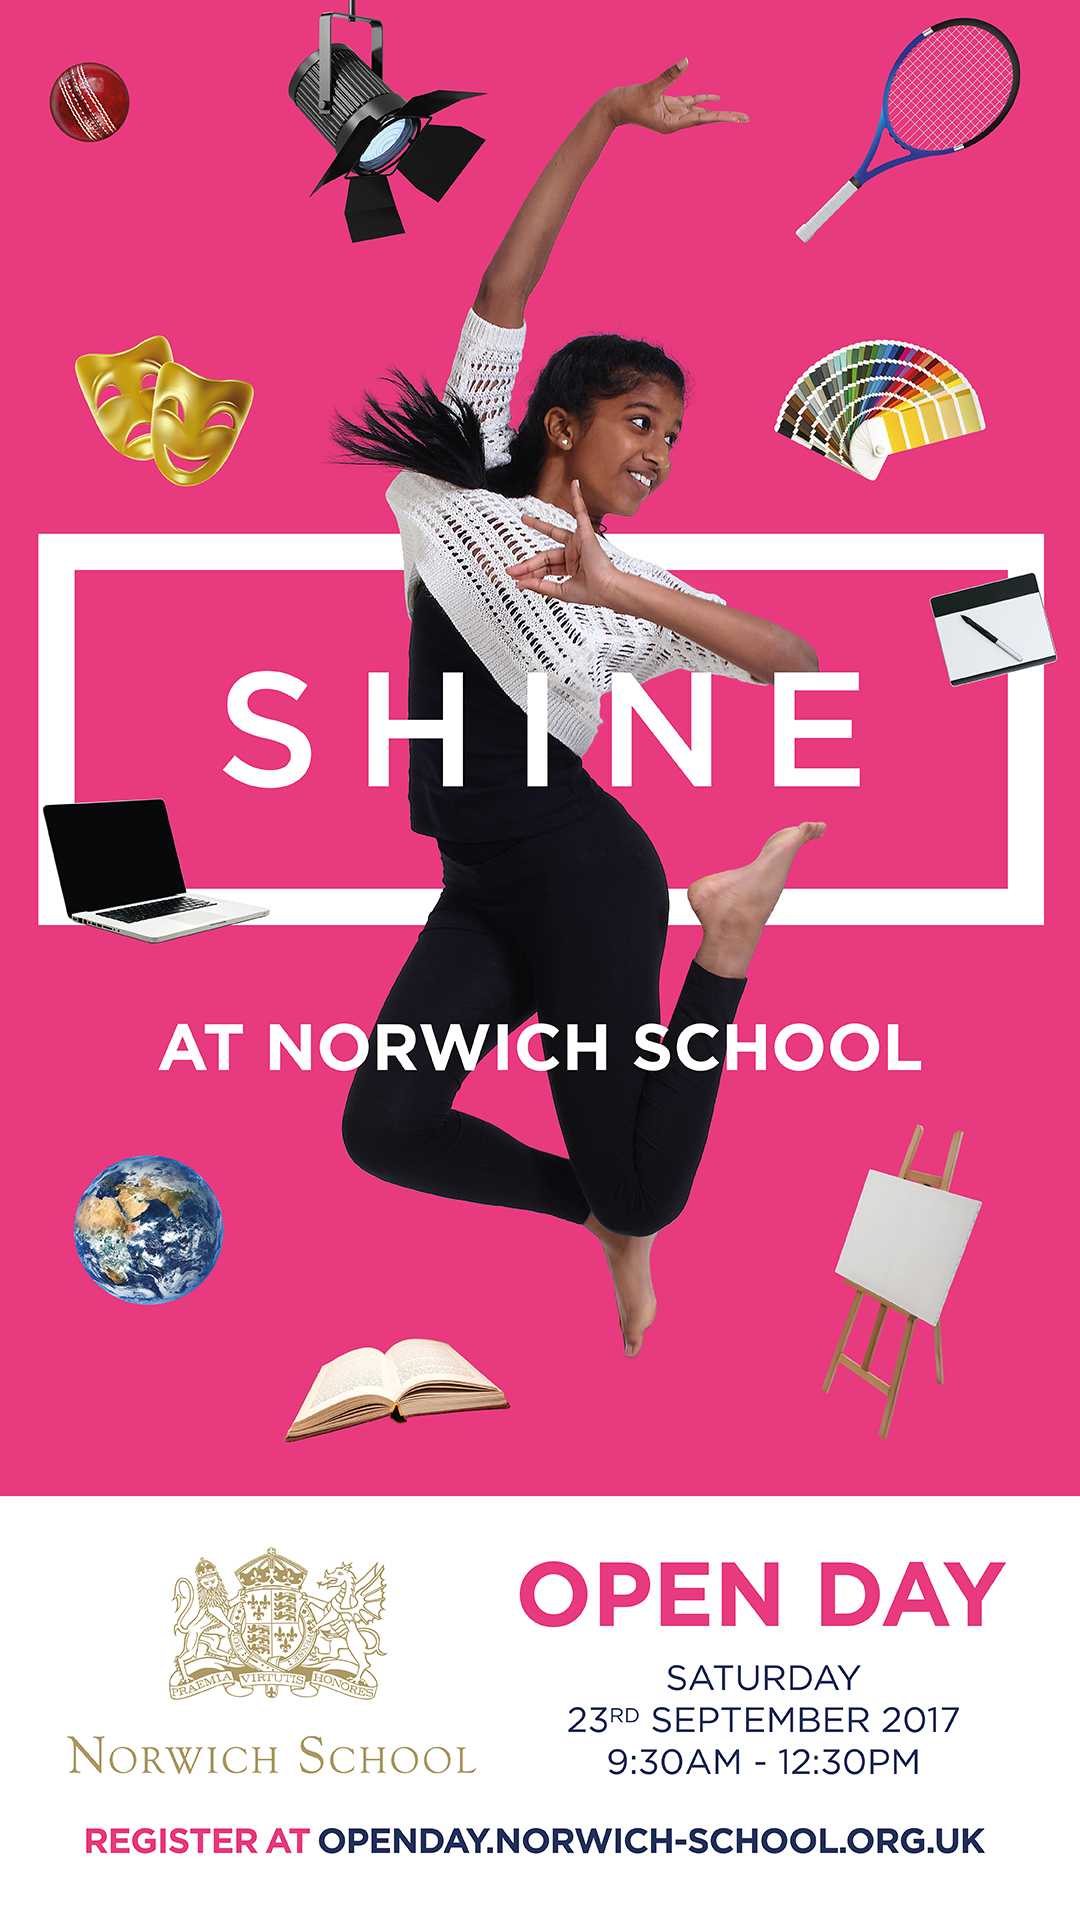 Norwich-School_Polo-Advertising-Shine 1080px x 1920px